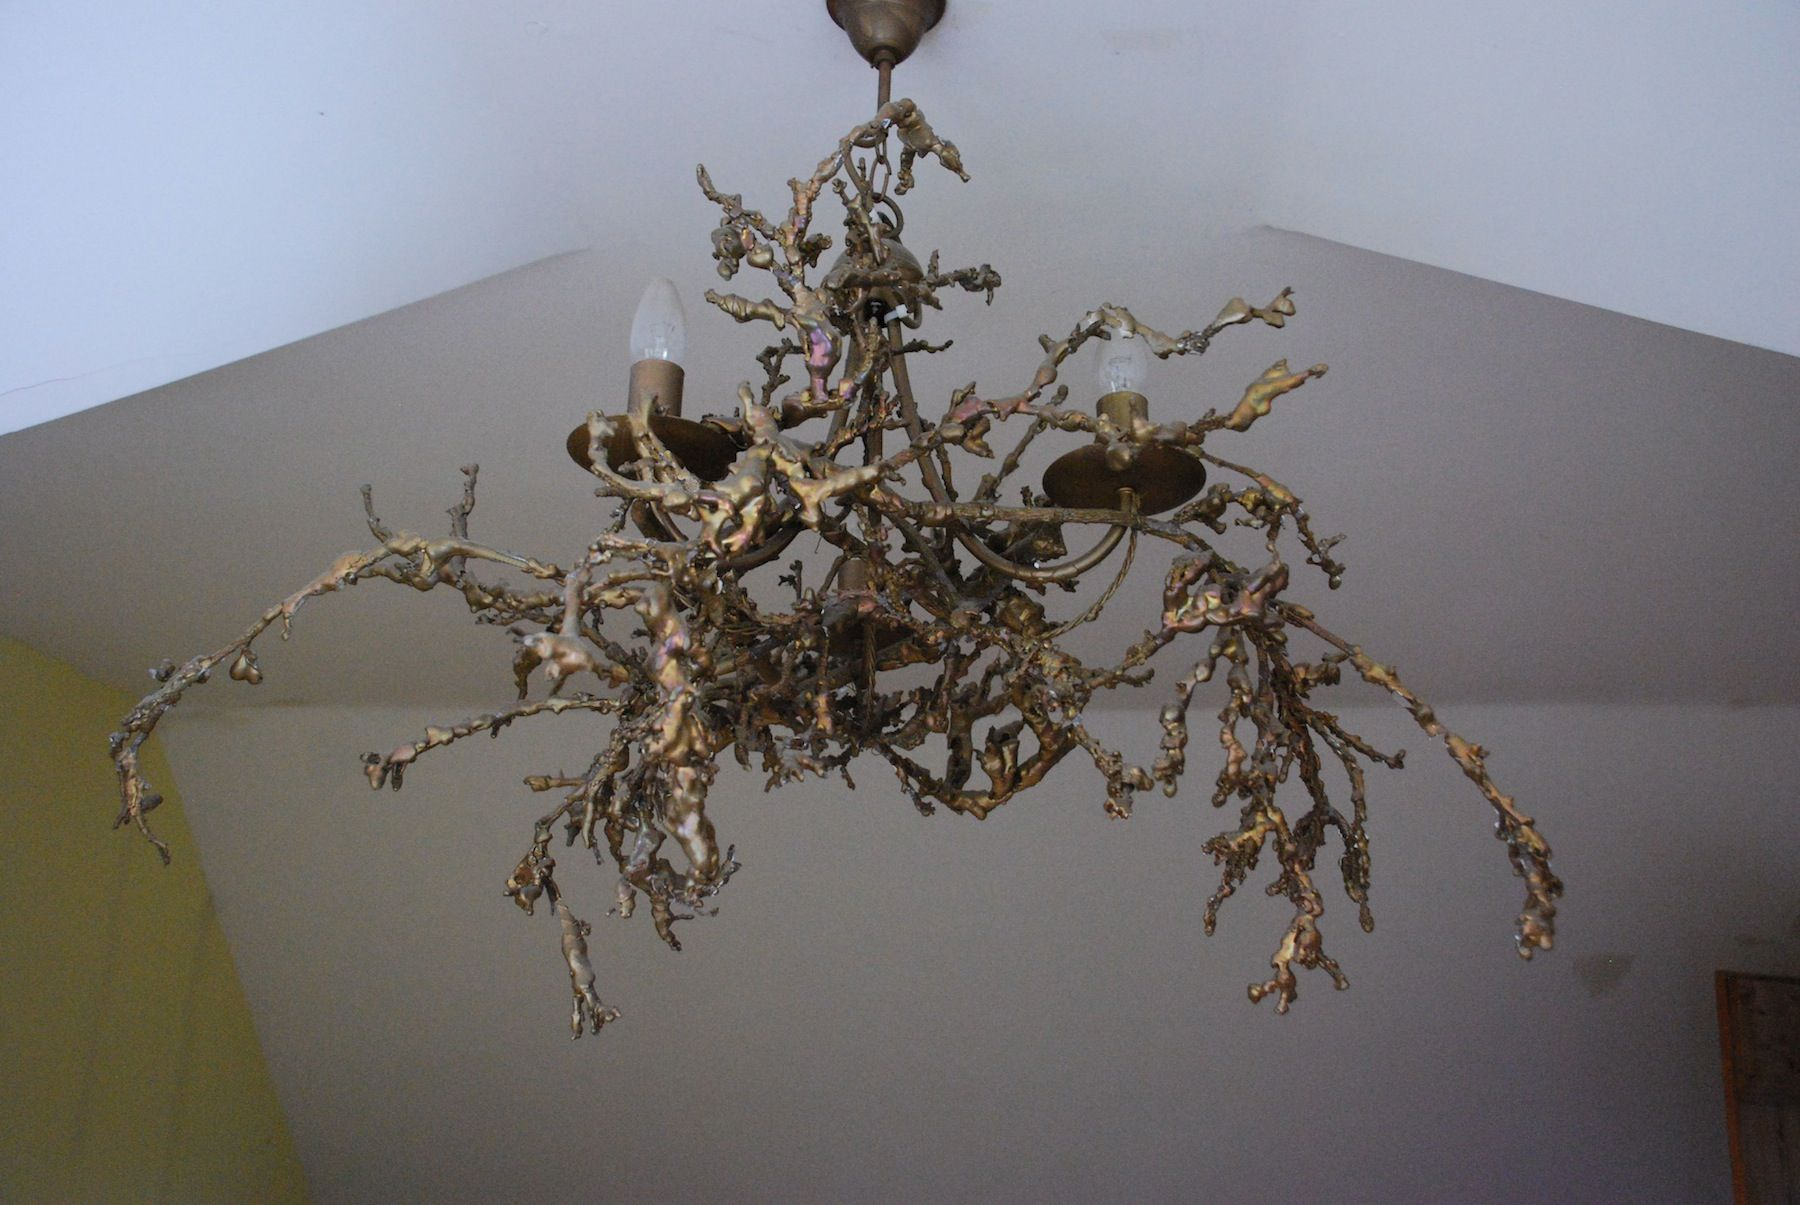 Interior Designs Amazing How To Make Your Own Chandelier Ideas